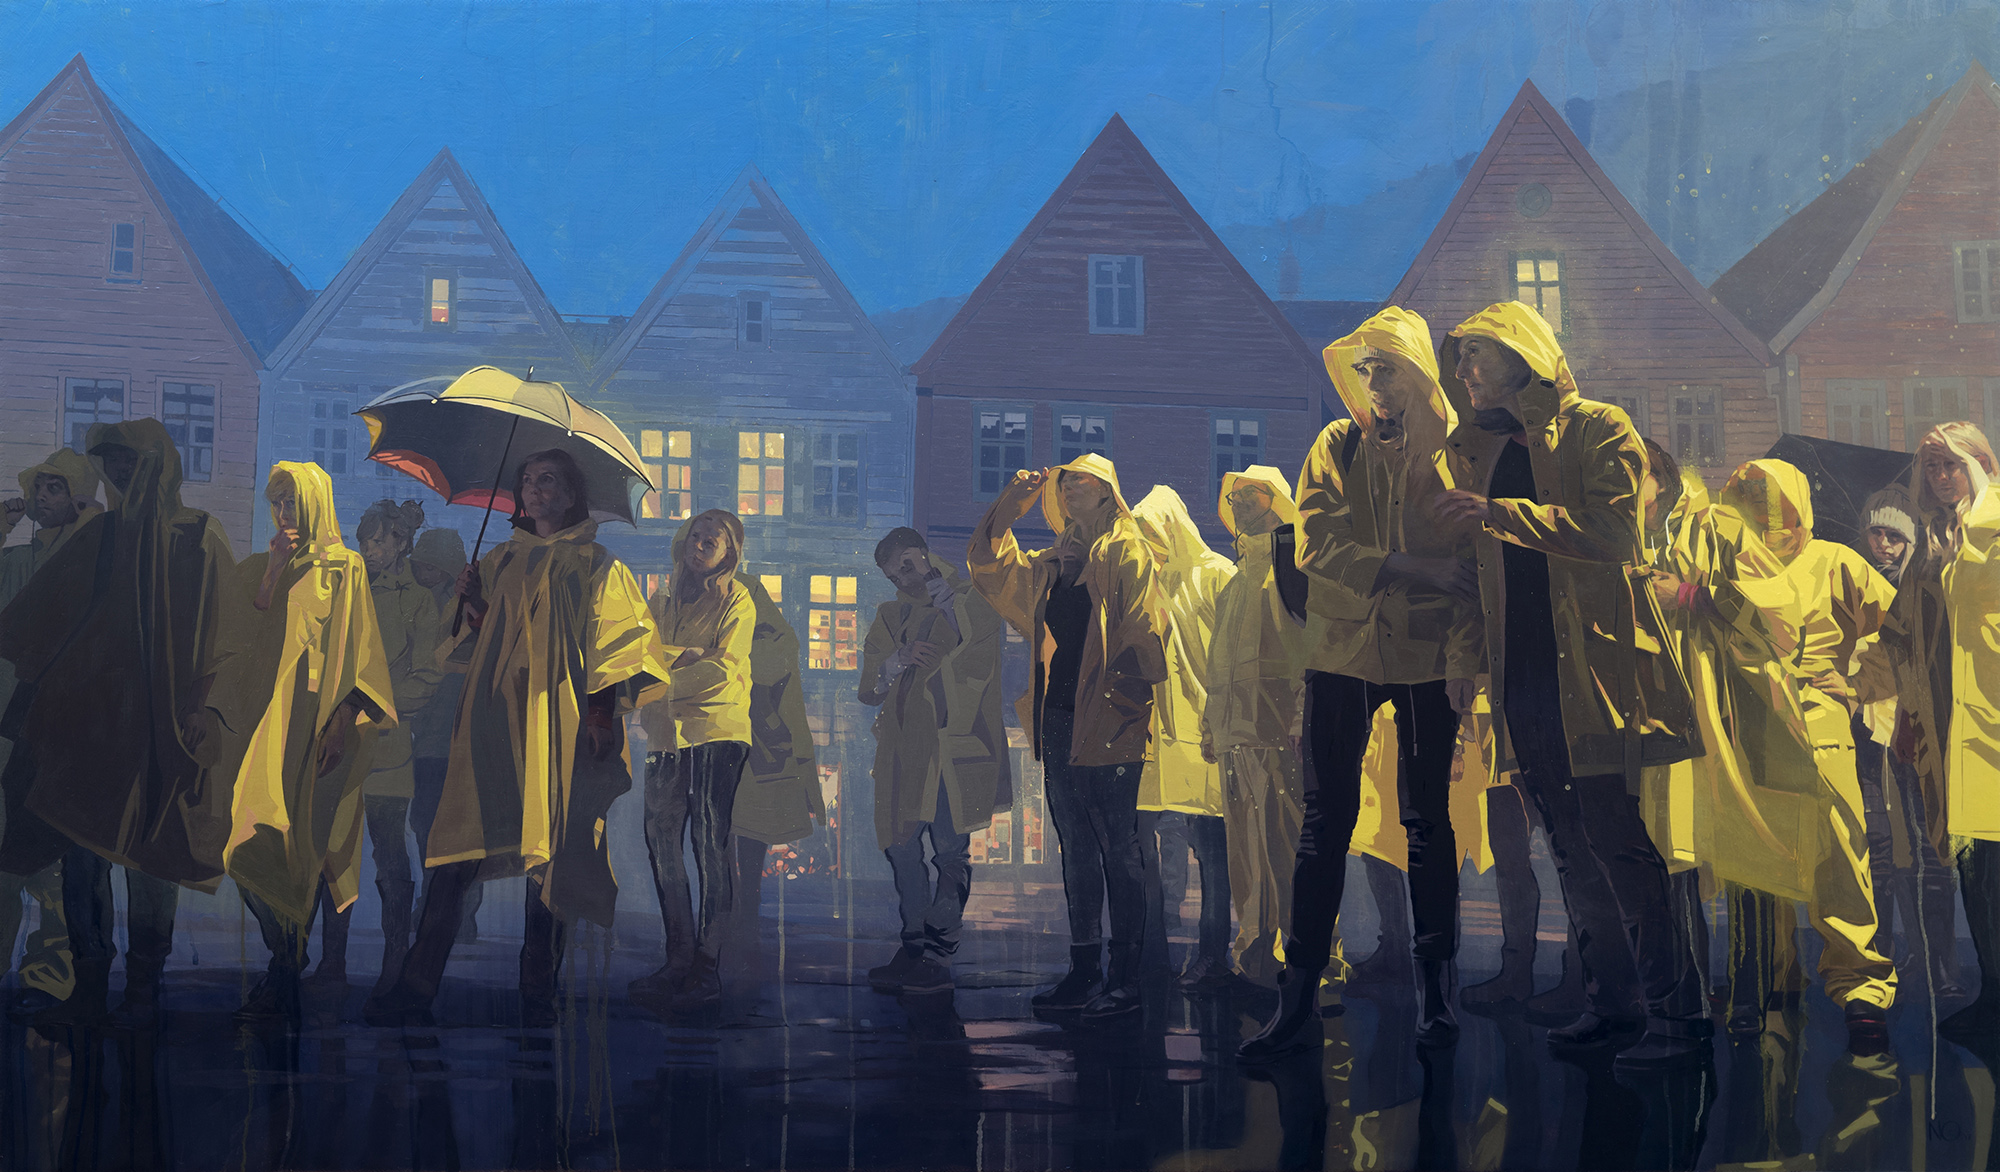 Rain Homage, oil on canvas, 145 x 85cm, 2017